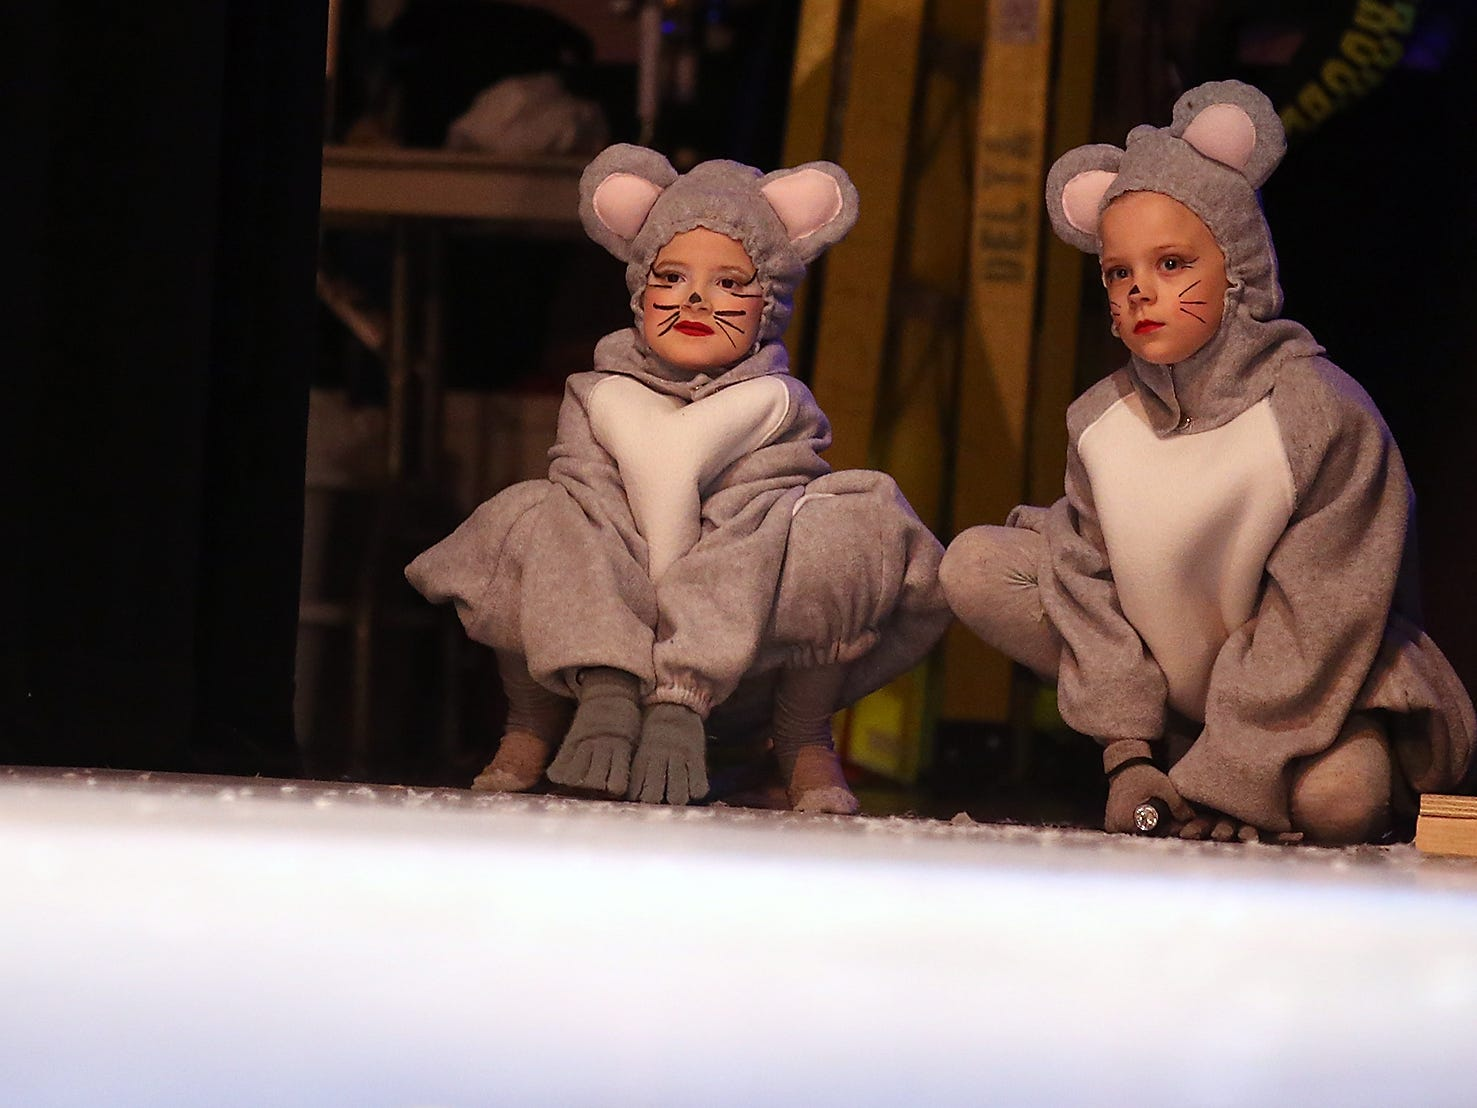 A pair of mice dancers await their cue side stage during Peninsula Dance Theatre's The Nutcracker rehearsal at the Bremerton Performing Arts Center on Wednesday, November 28, 2018.